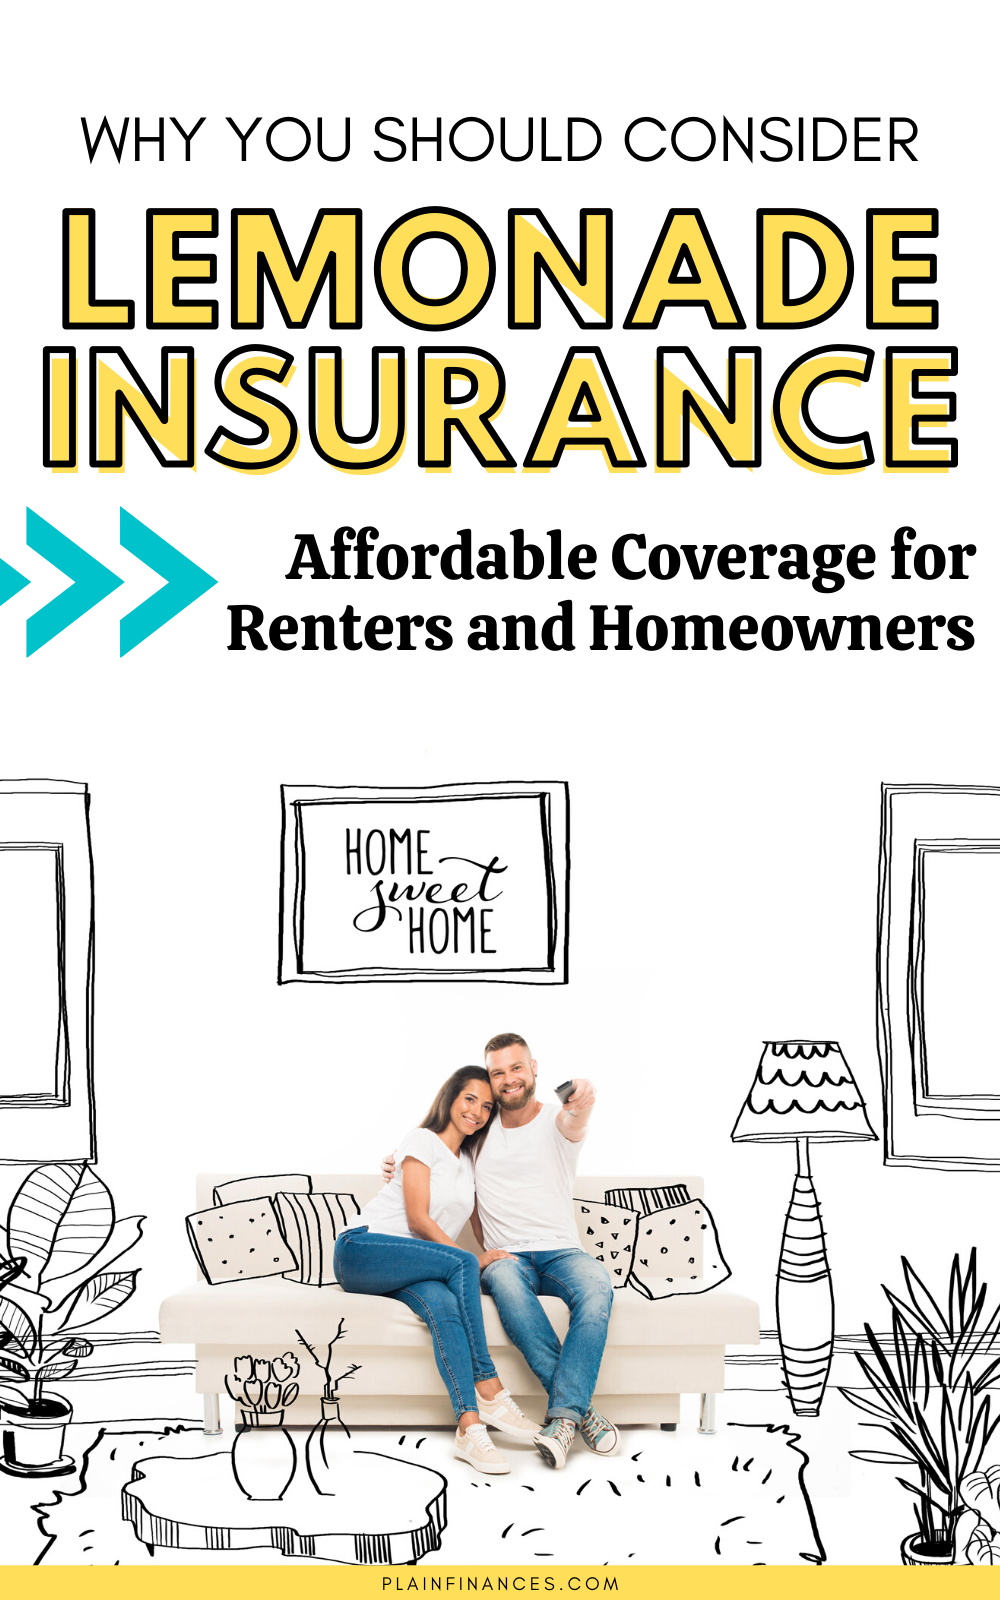 Lemonade Insurance Review Affordable Coverage for Renters